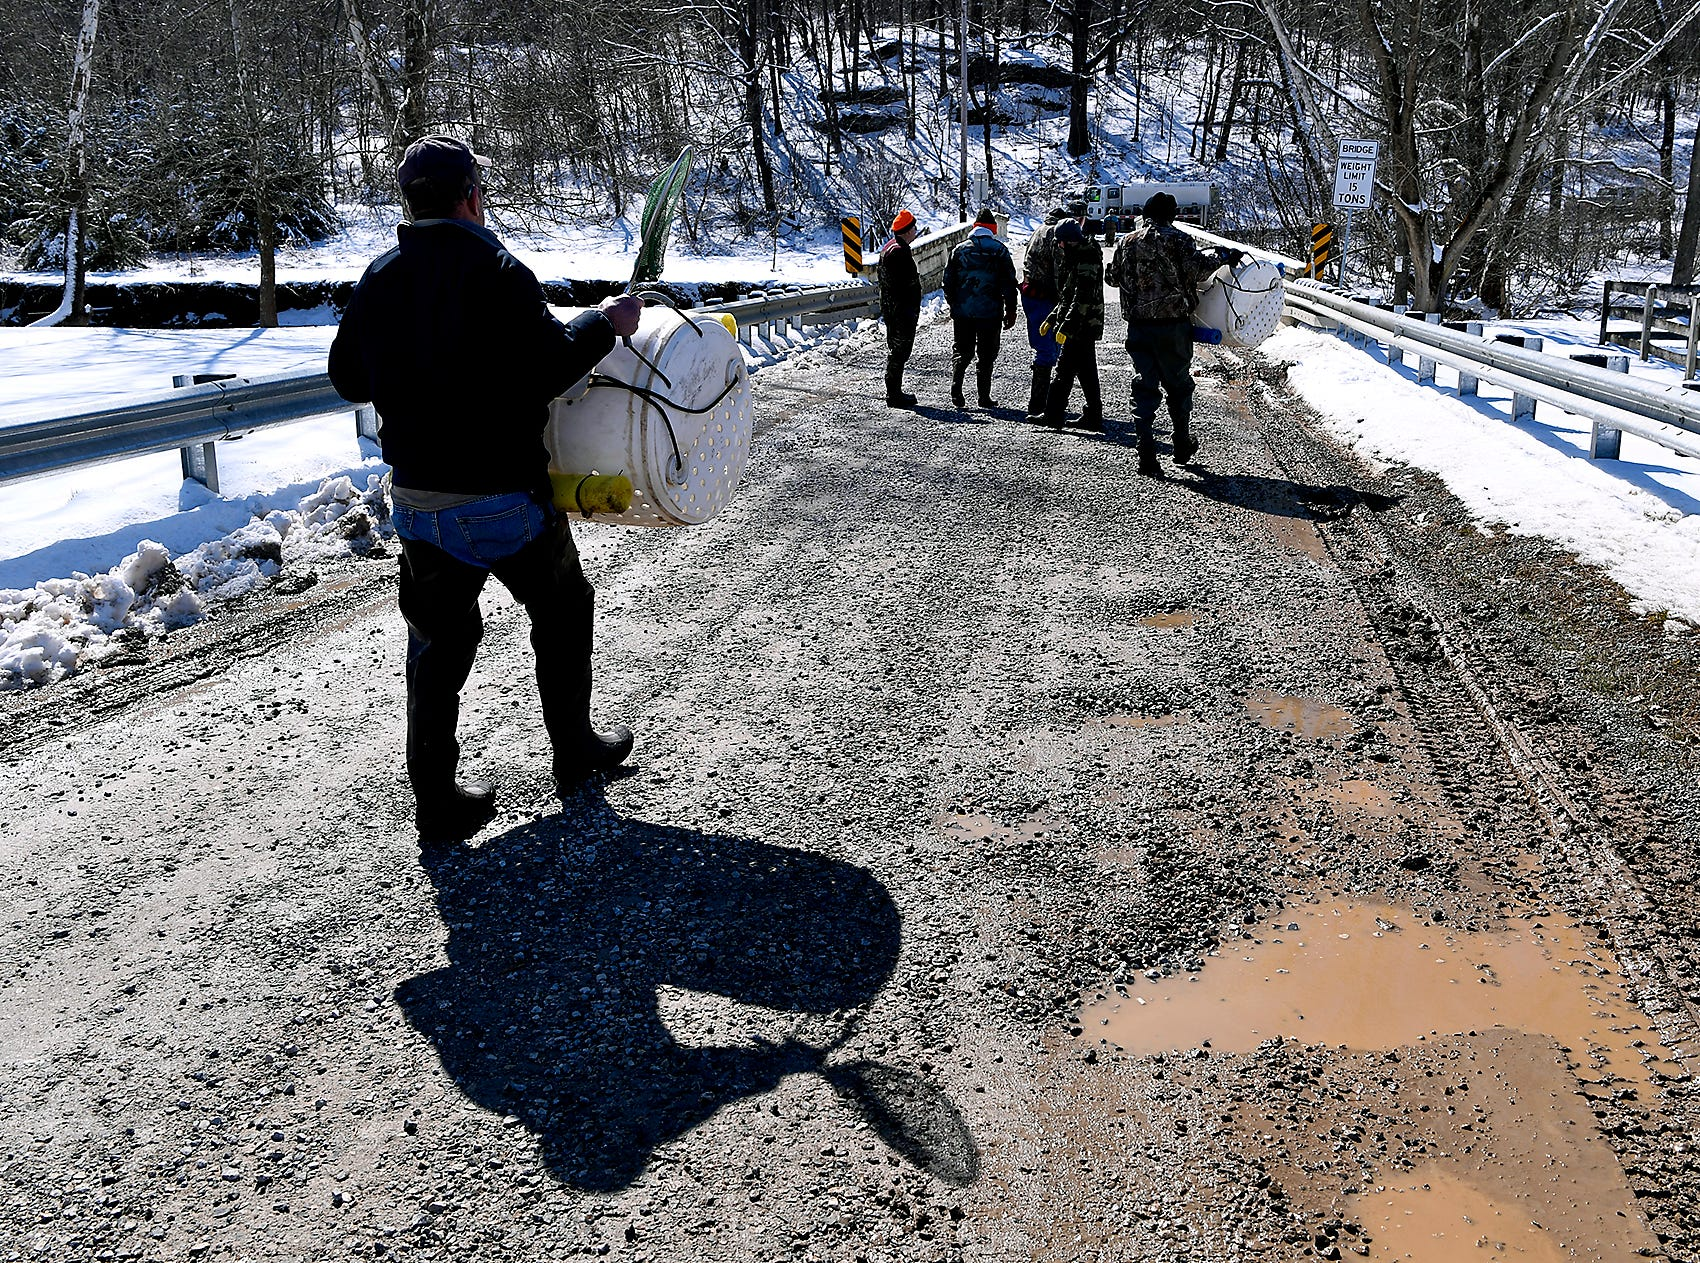 Volunteers from local sportsman's groups help Fish Commission stocking trout in Muddy Creek and Bald Eagle Creek in southeastern York County, Tuesday, March 5, 2019. The stocking was the first of several that will happen before trout season opens on March 30.John A. Pavoncello photo